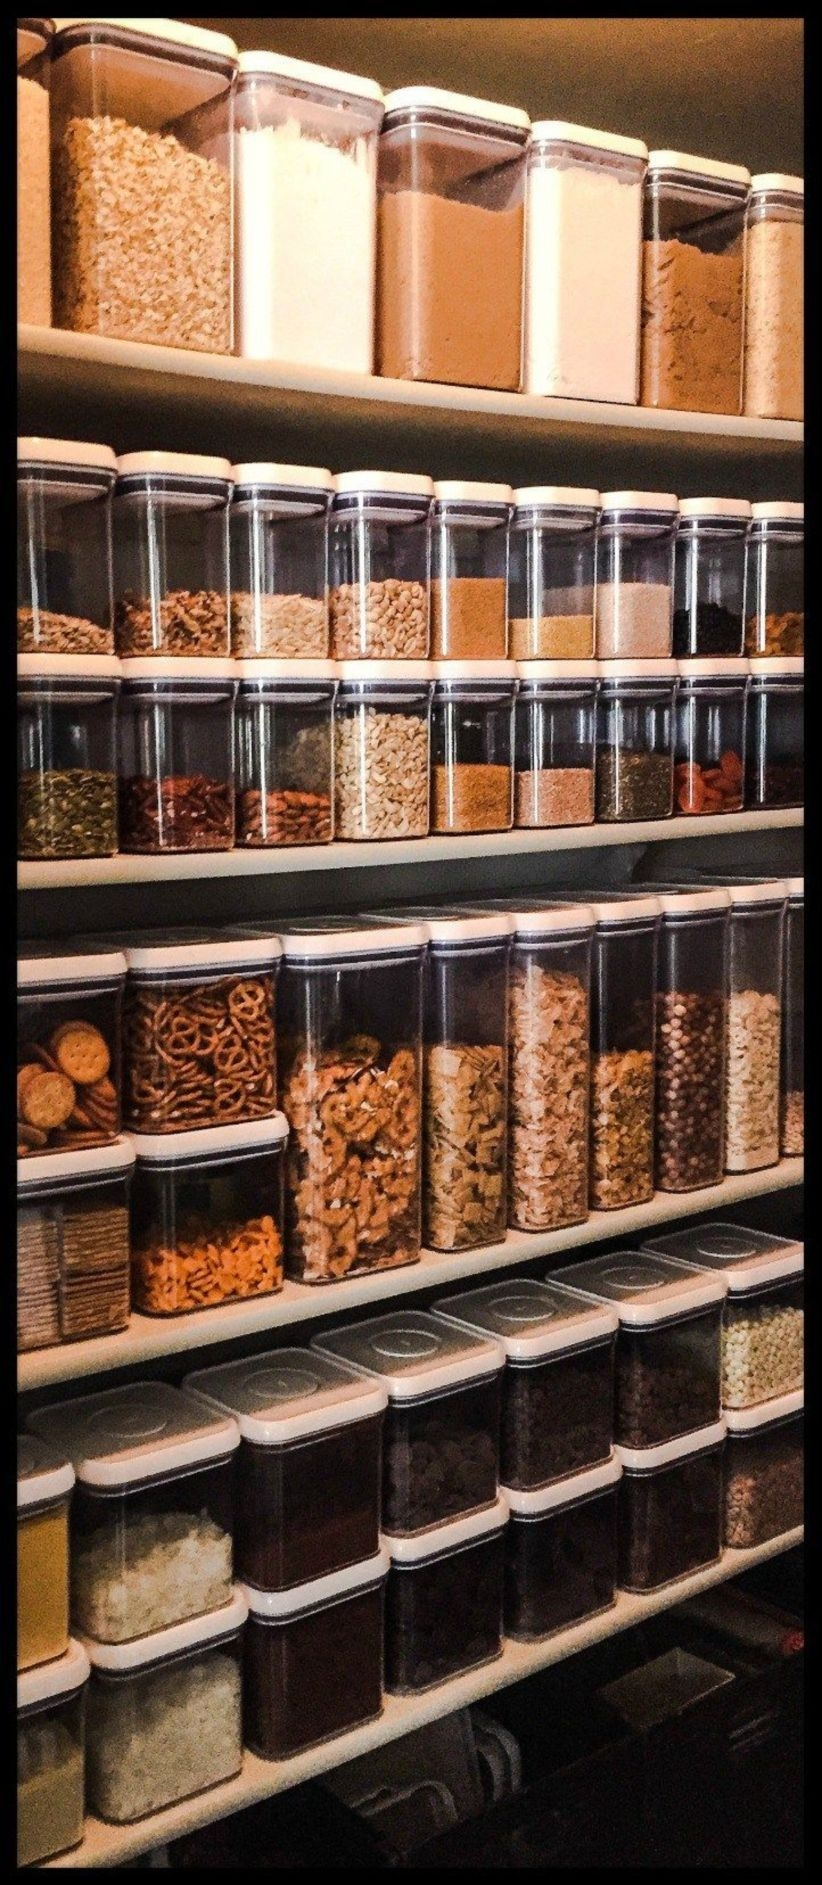 pinterest kitchen organization 44 smart kitchen cabinet organization ideas godiygo 1520